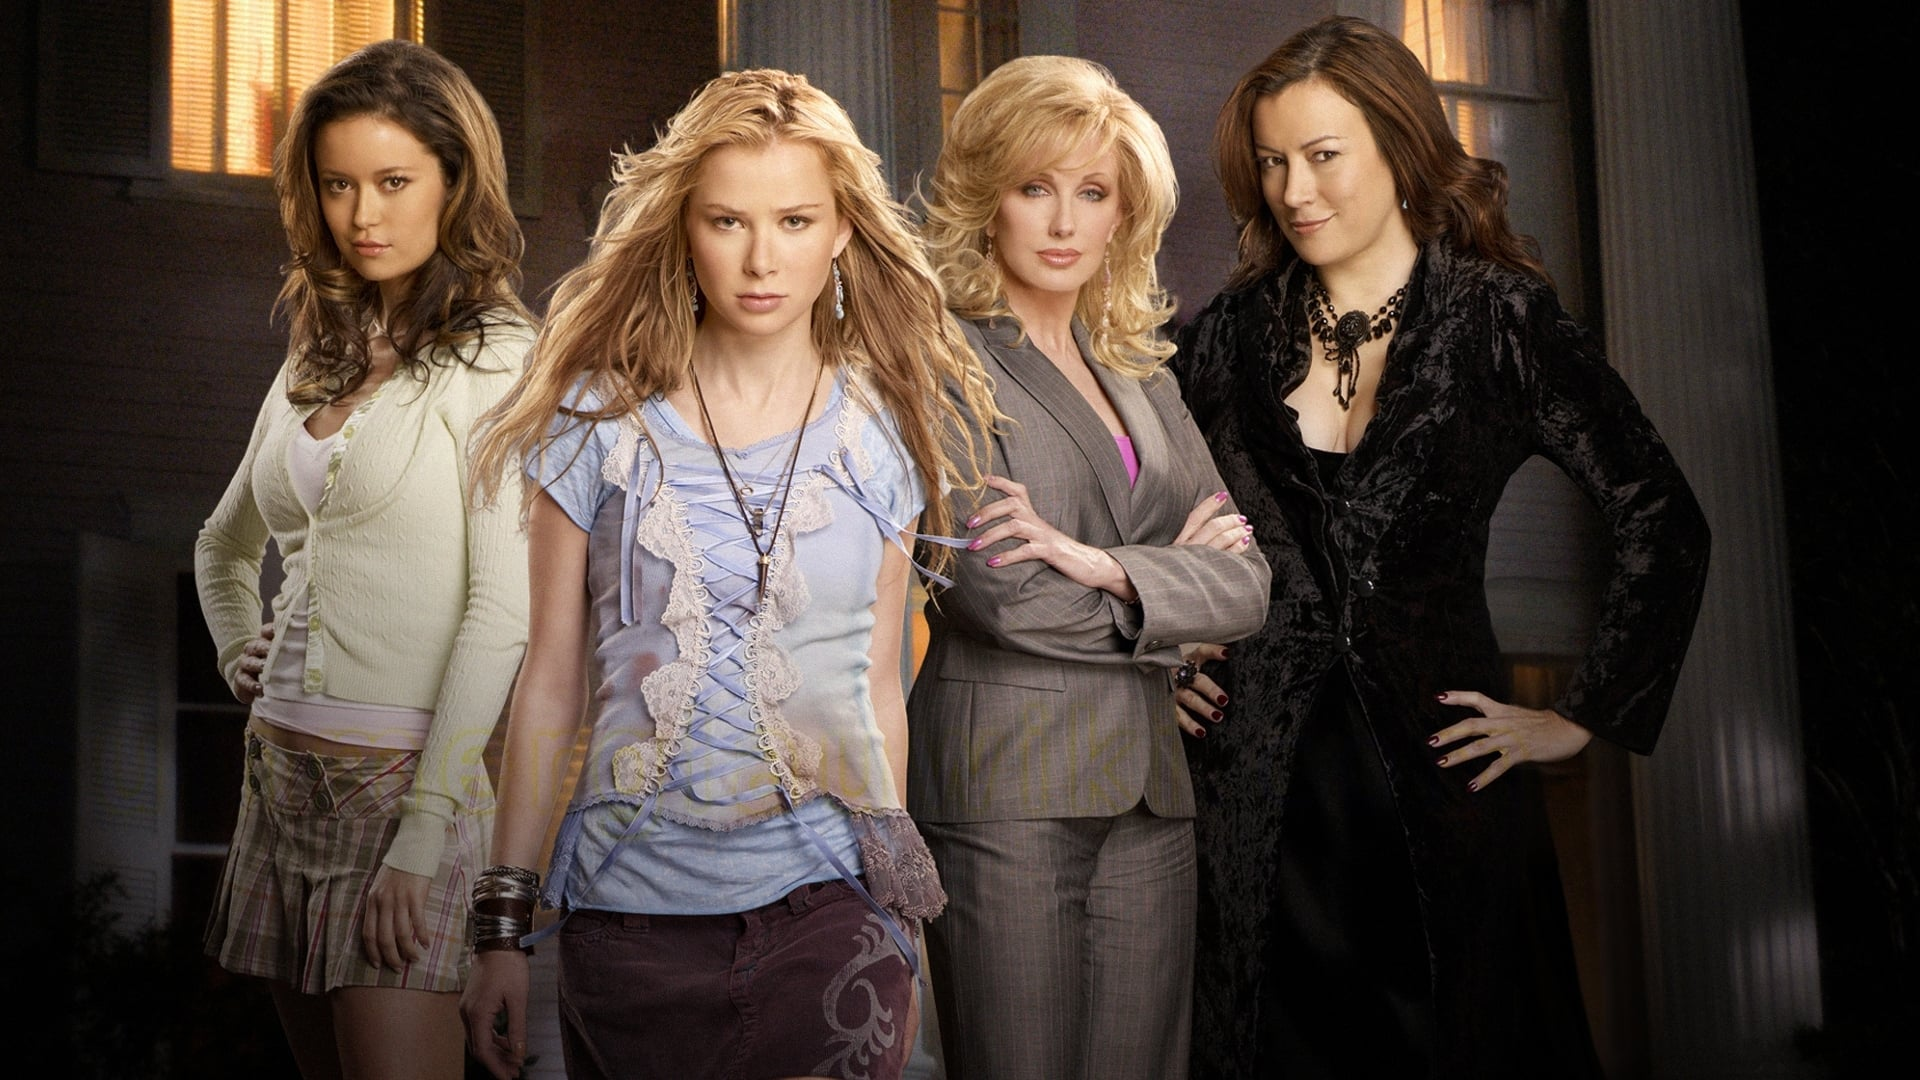 Cast line-up - (l to r) sisters Summer Glau and Mika Boorem their mother Morgan Fairchild and sorority housemother Jennifer Tilly in The Initiation of Sarah (2006)